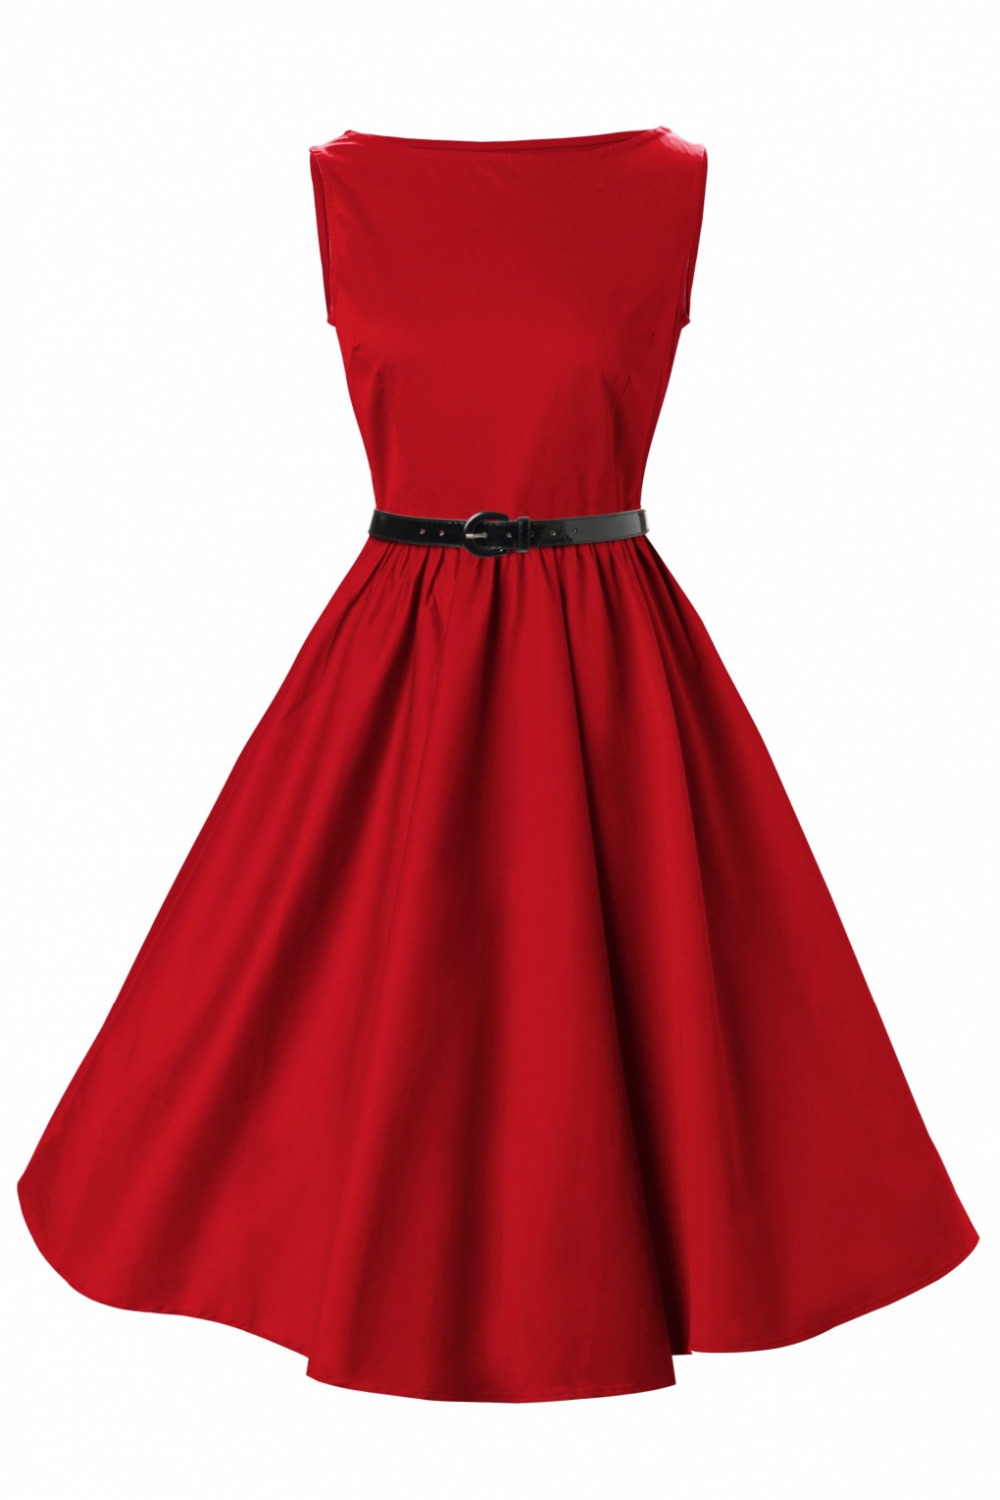 Black Red Cotton Dress Vintage Style Novelty Bridesmaid -9474